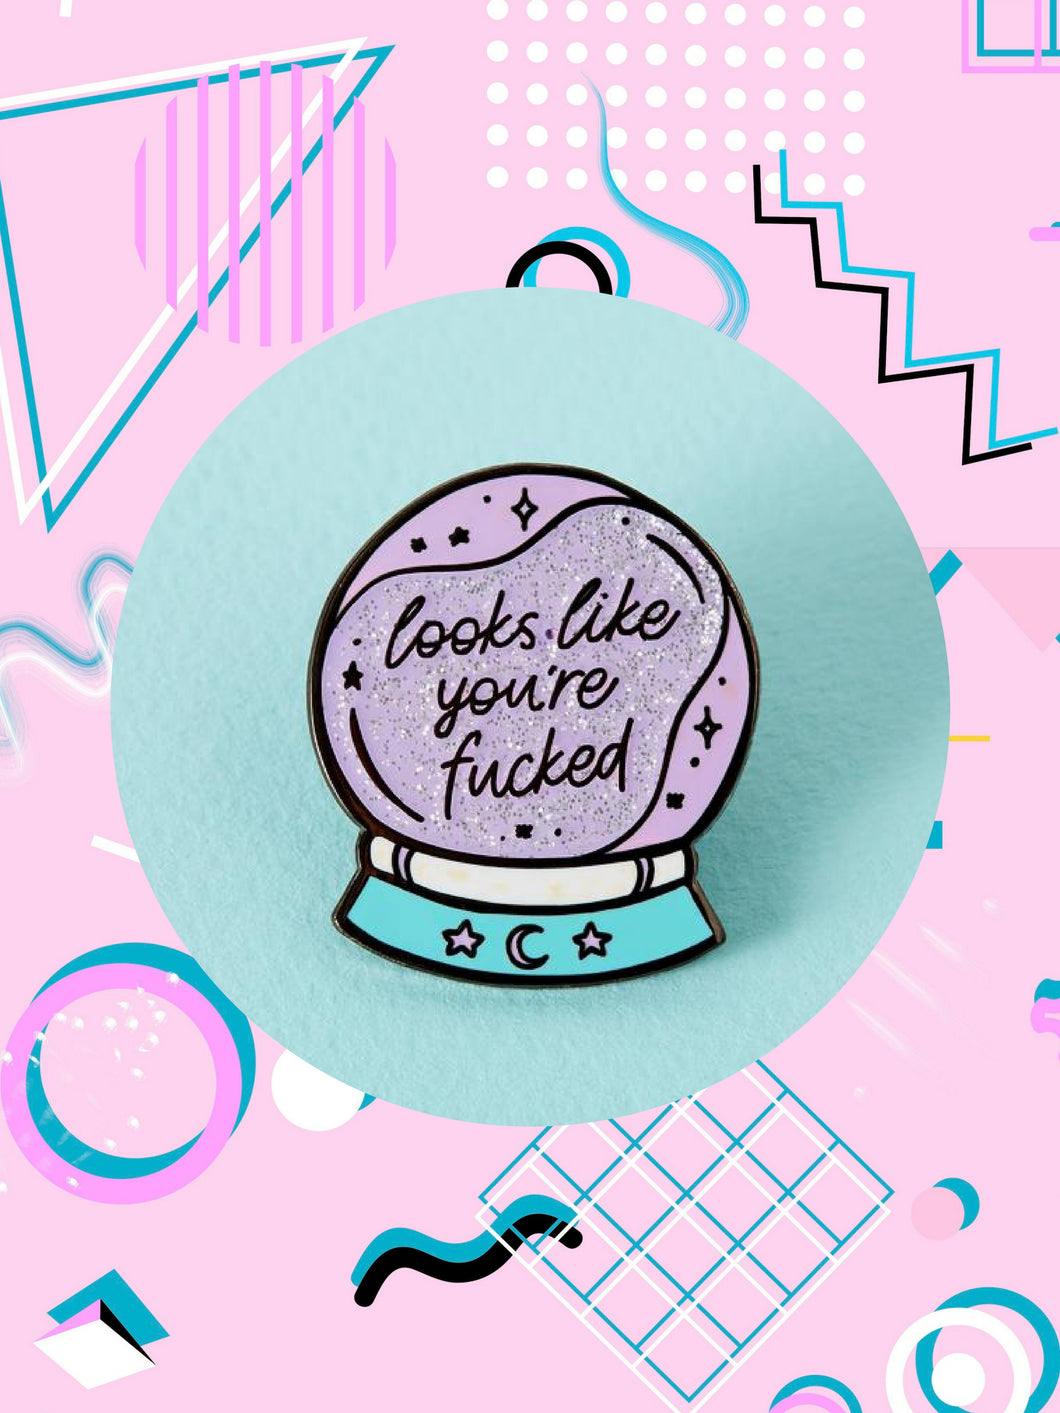 enamel pin shaped like a crystal ball that says, Looks Like You're Fucked